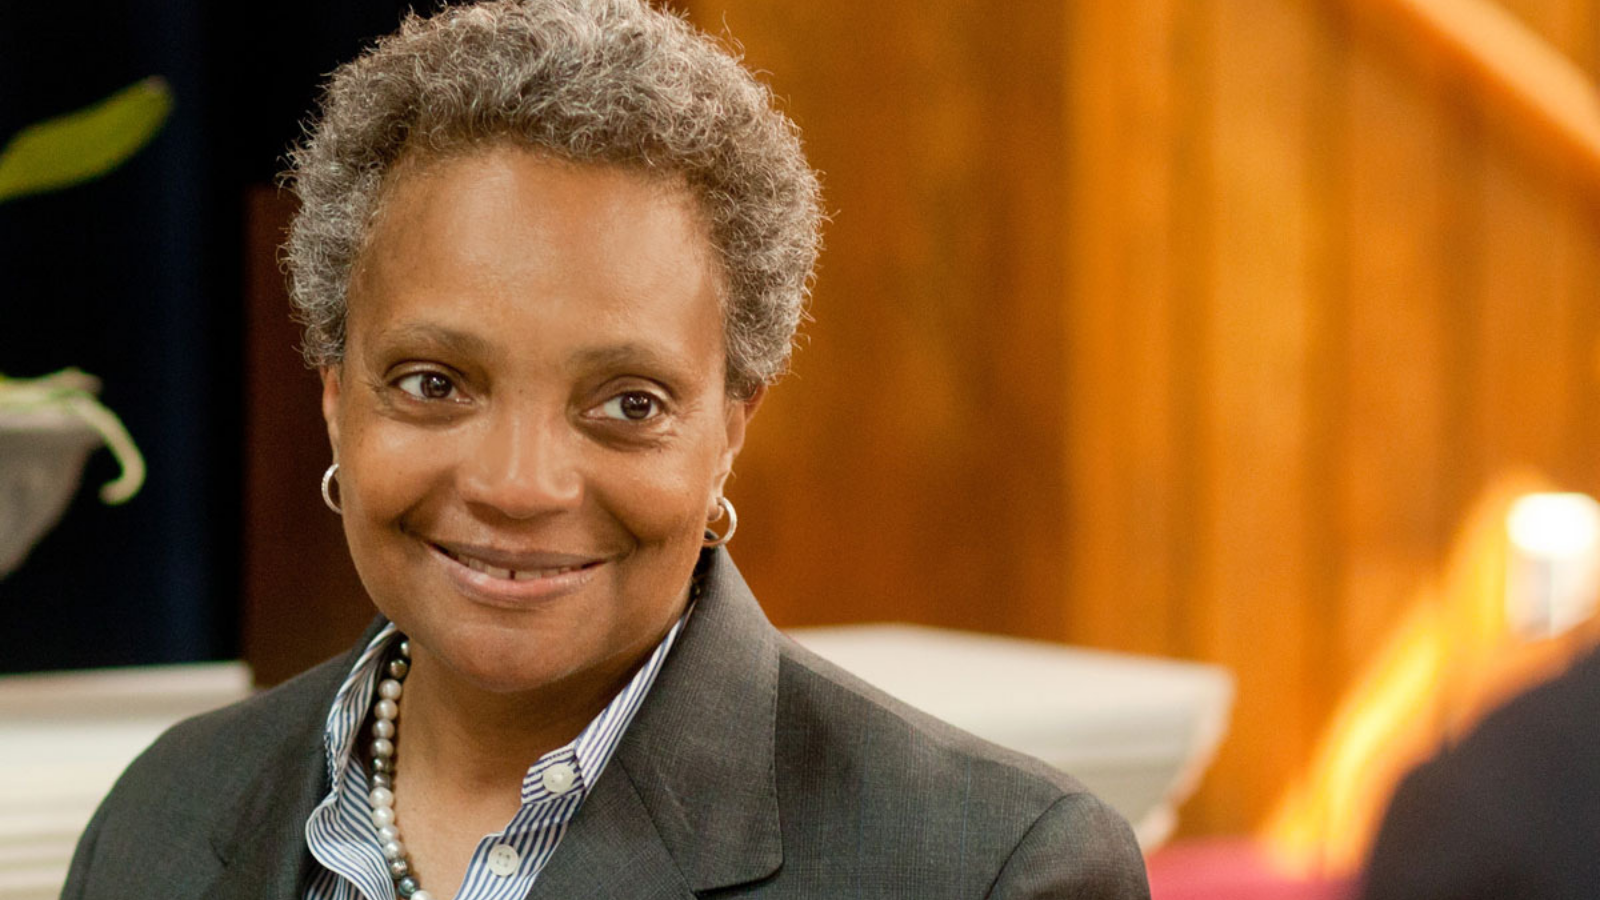 HRC Endorses Lori Lightfoot for Mayor of Chicago